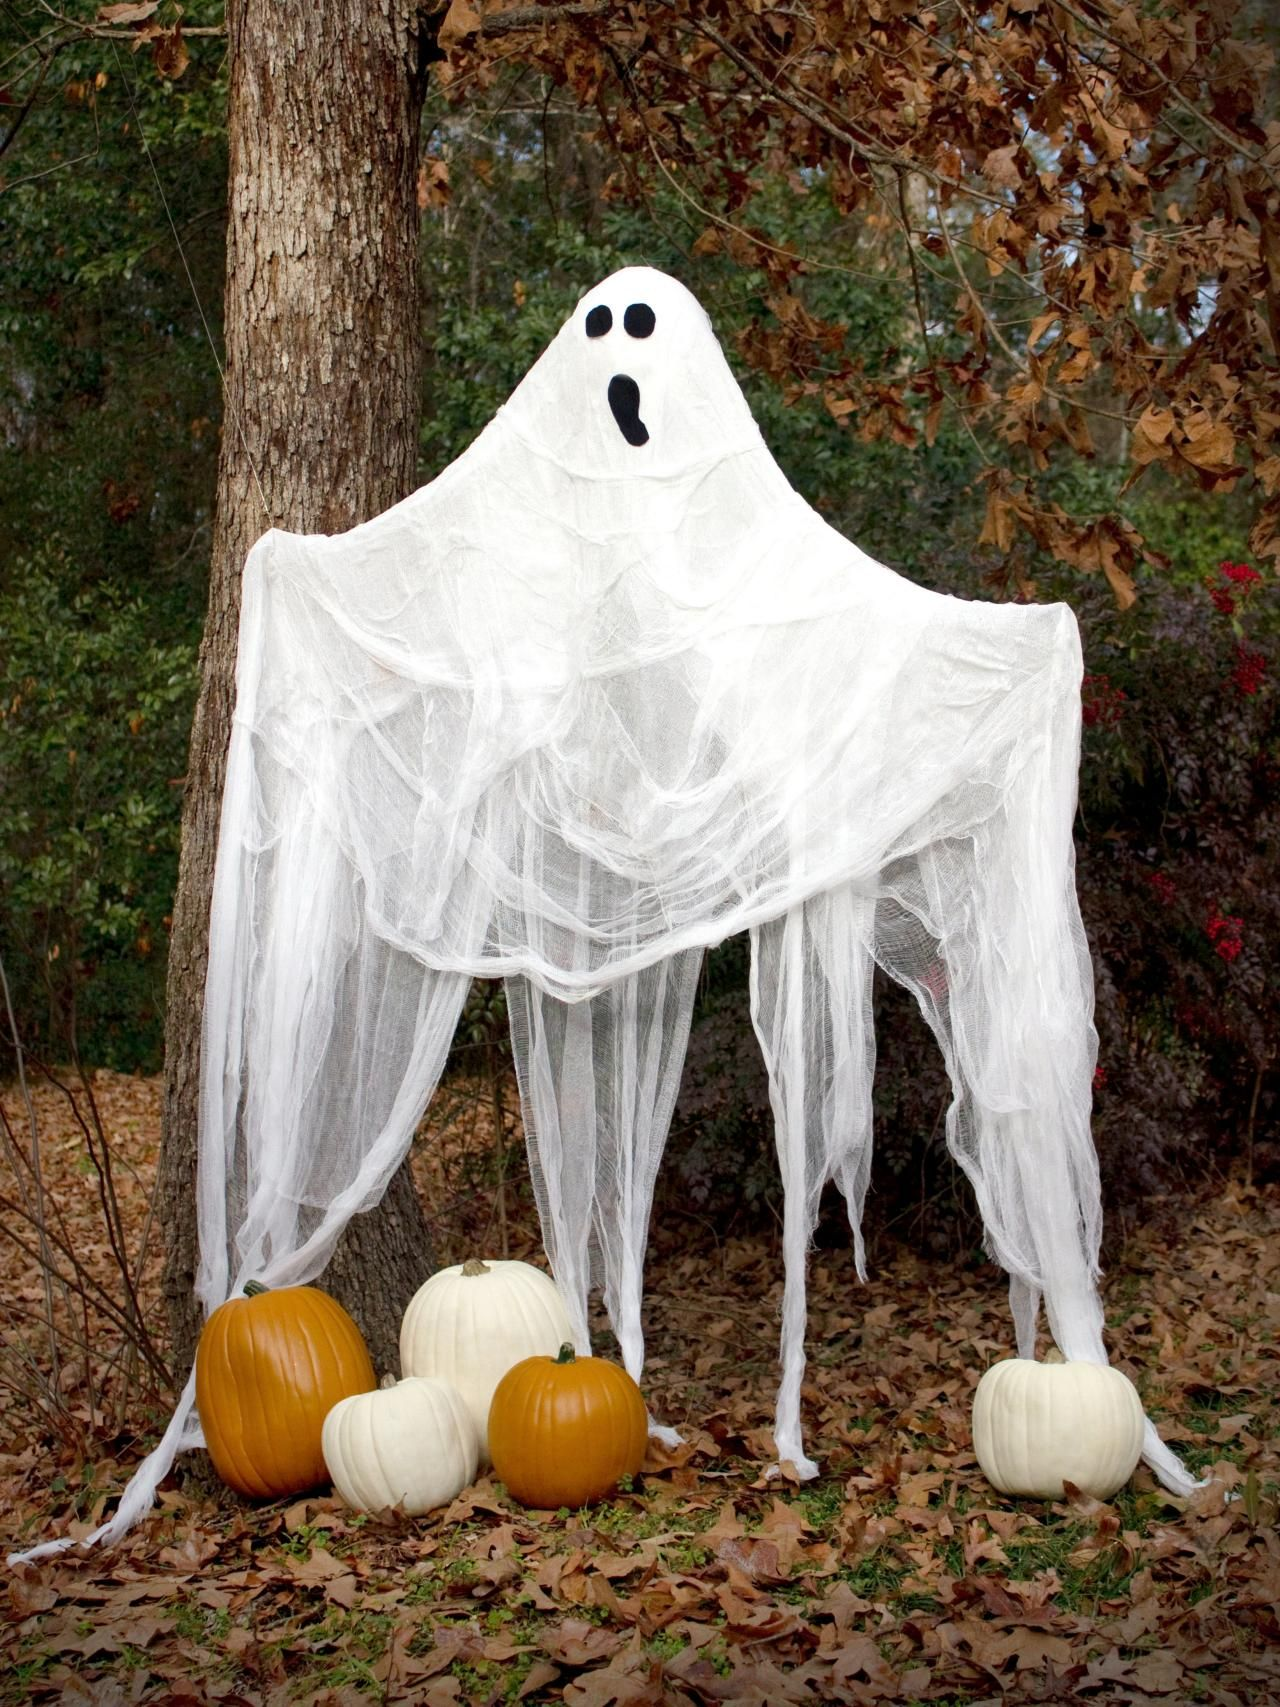 Halloween Decorations Ghosts halloween decorations for camp - Ghost Halloween Decorations